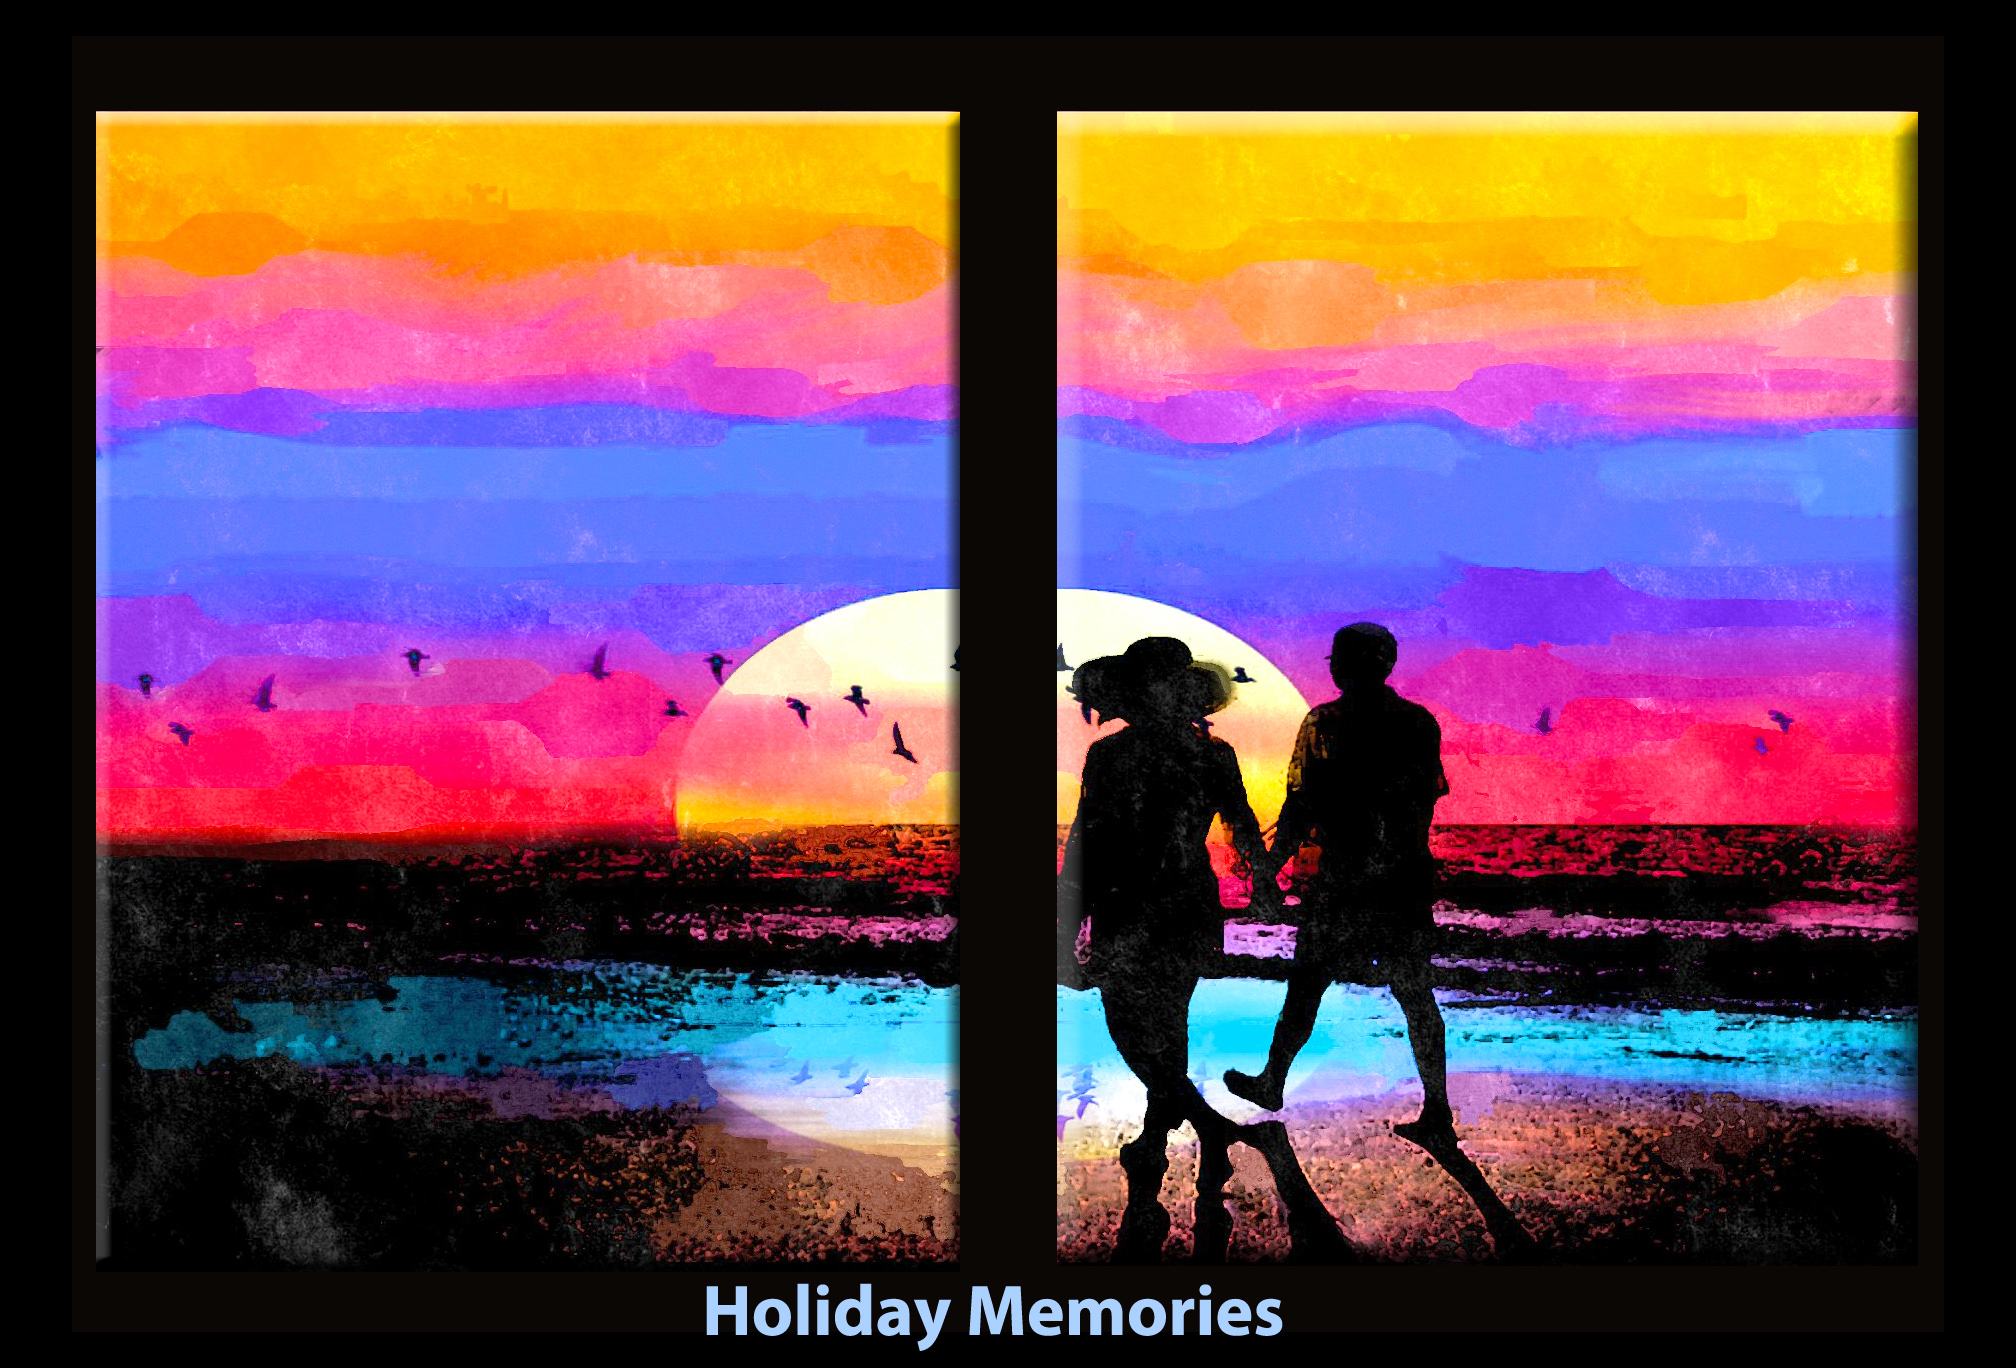 Holiday Memories